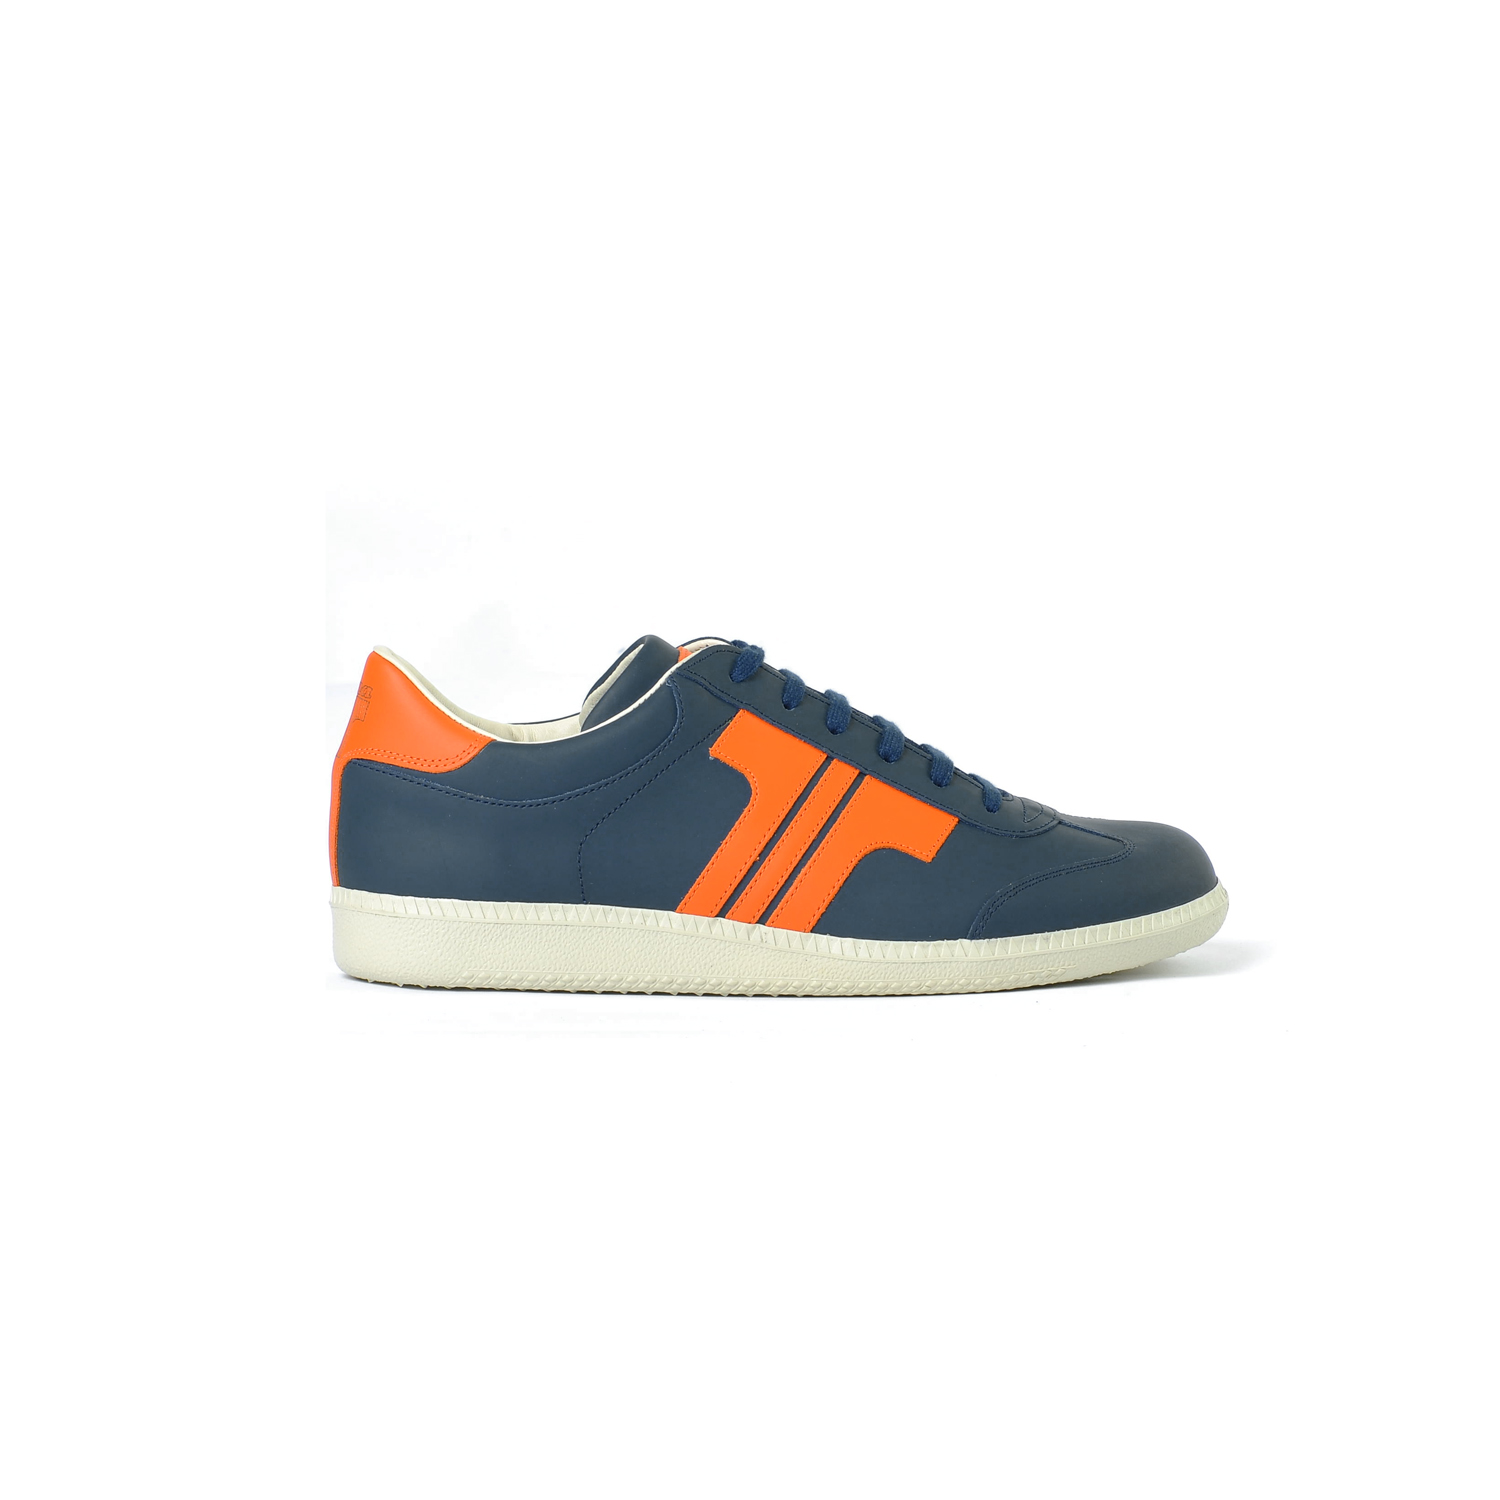 Tisza shoes - Compakt - Navy-orange